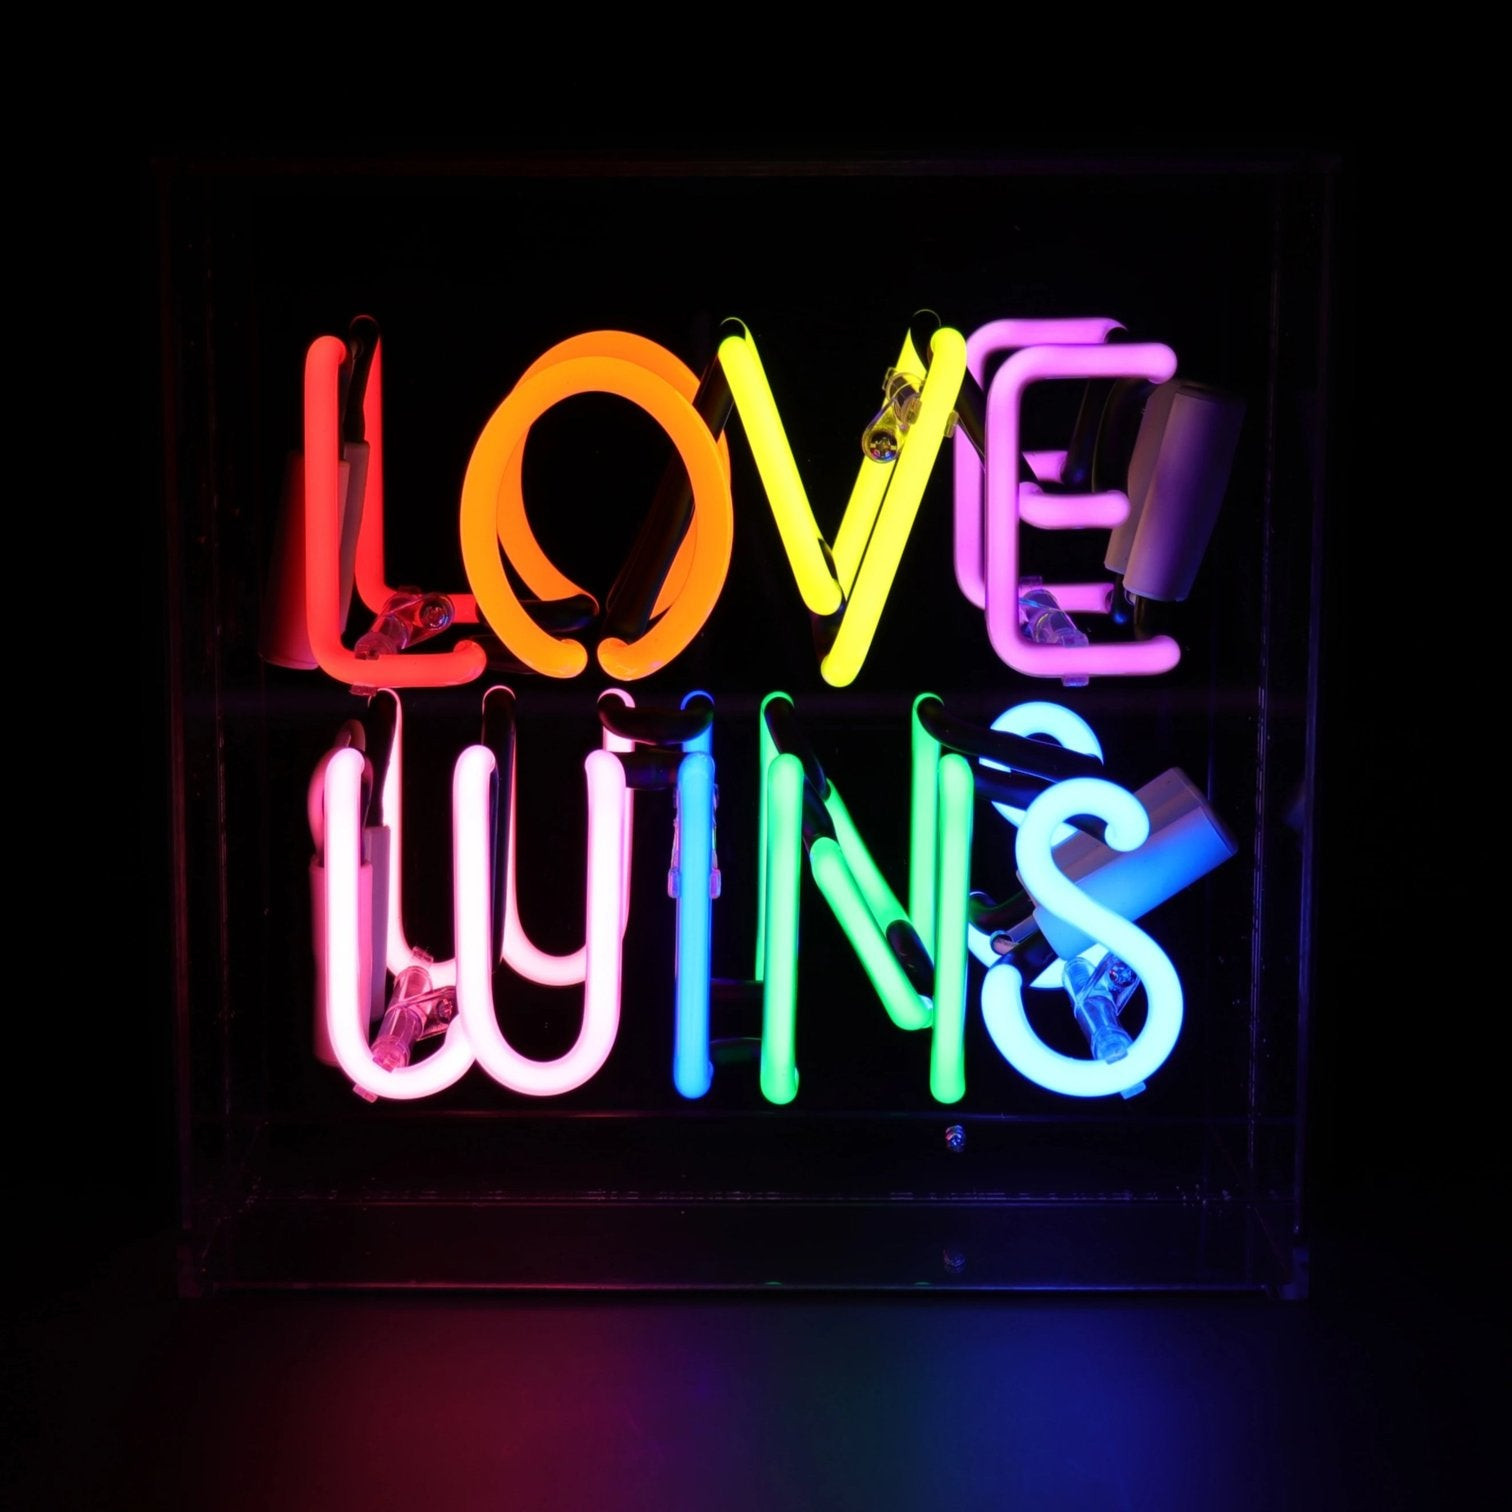 'Love Wins' Acrylic Box Neon Light